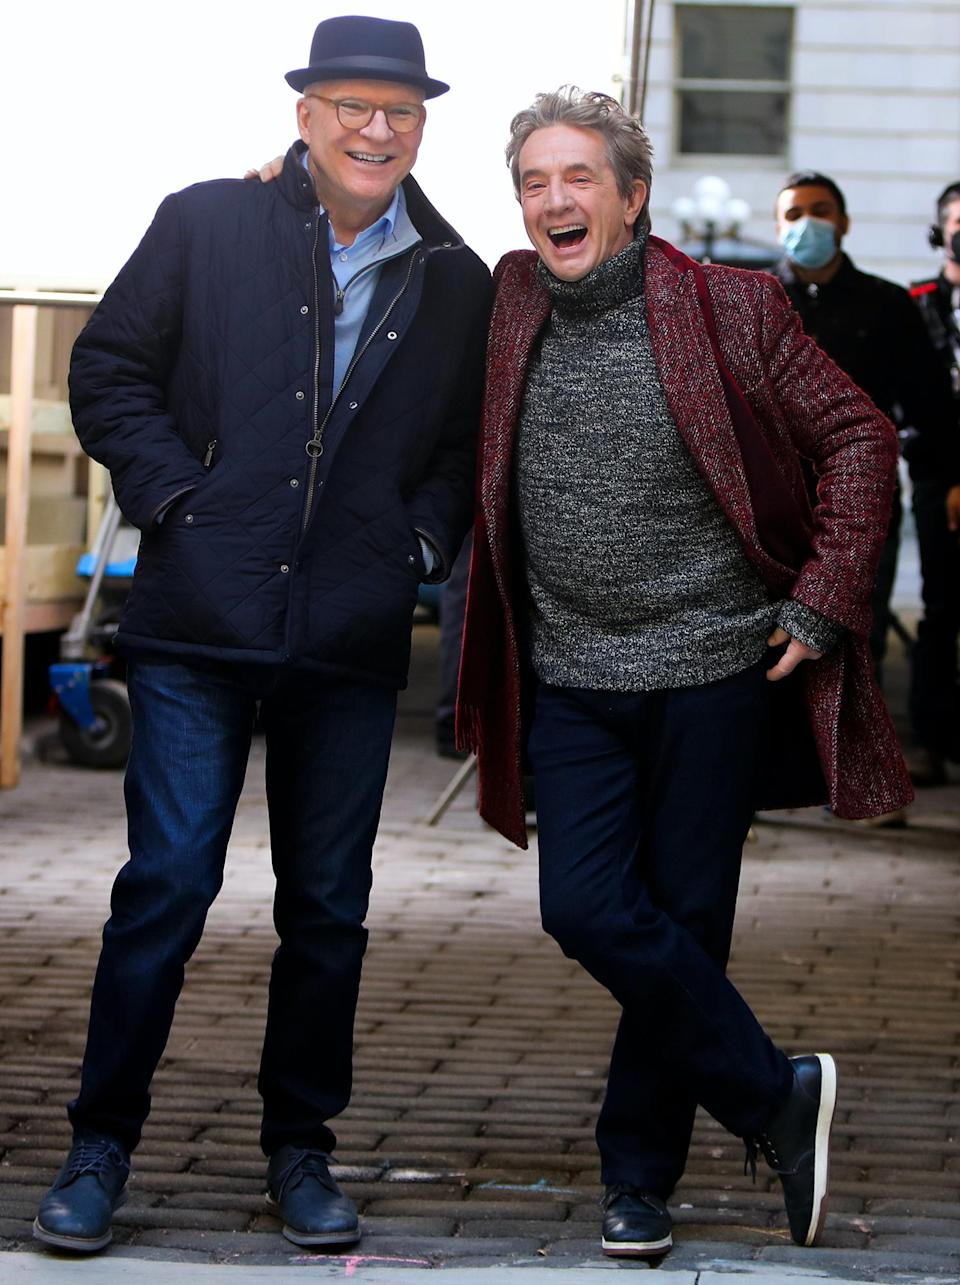 <p>Steve Martin and Martin Short share a laugh on the set of <em>Only Murder in the Building</em> on Wednesday in N.Y.C.</p>